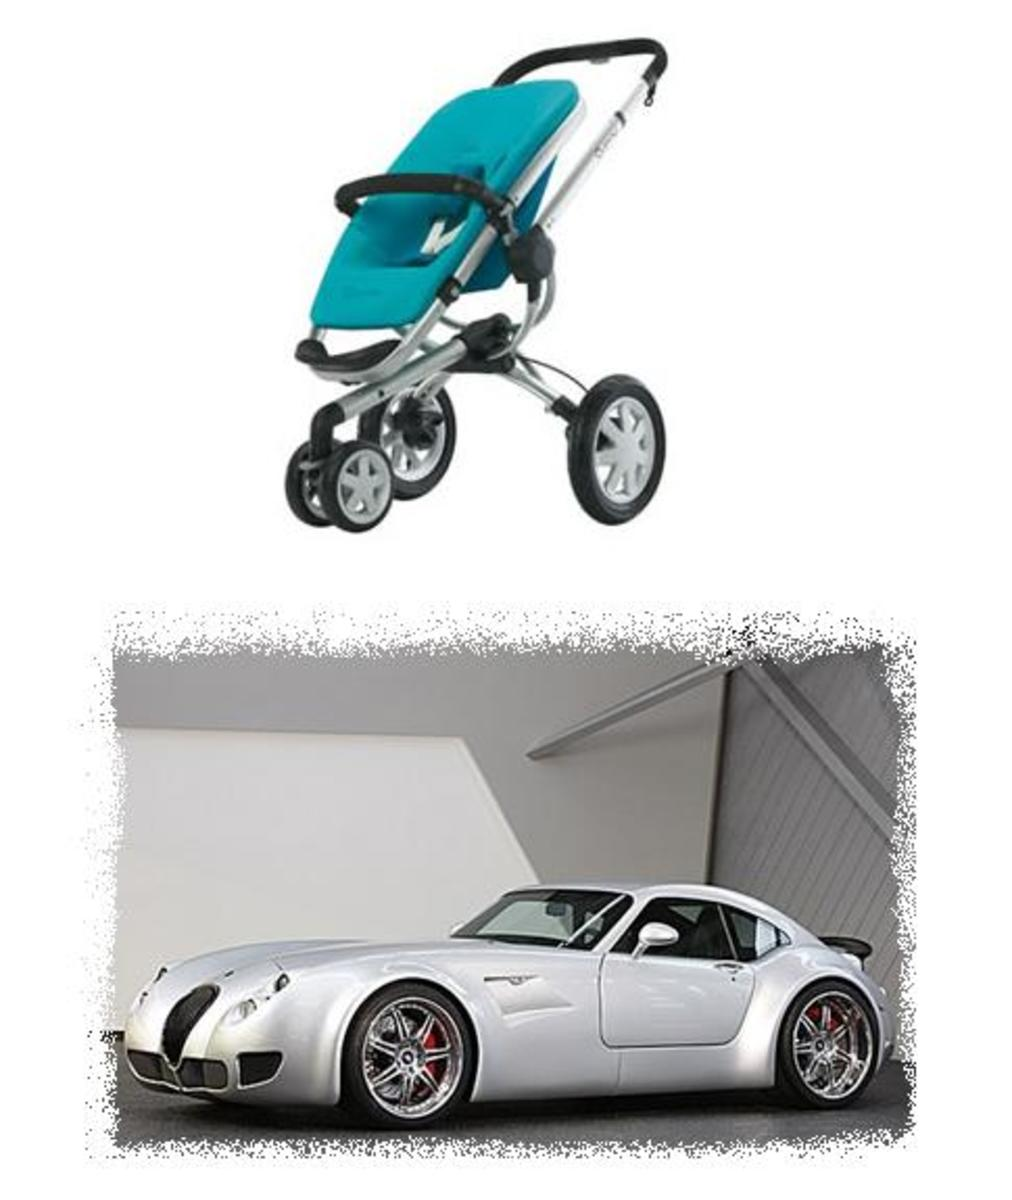 Stroller Buying Guide for New Parents